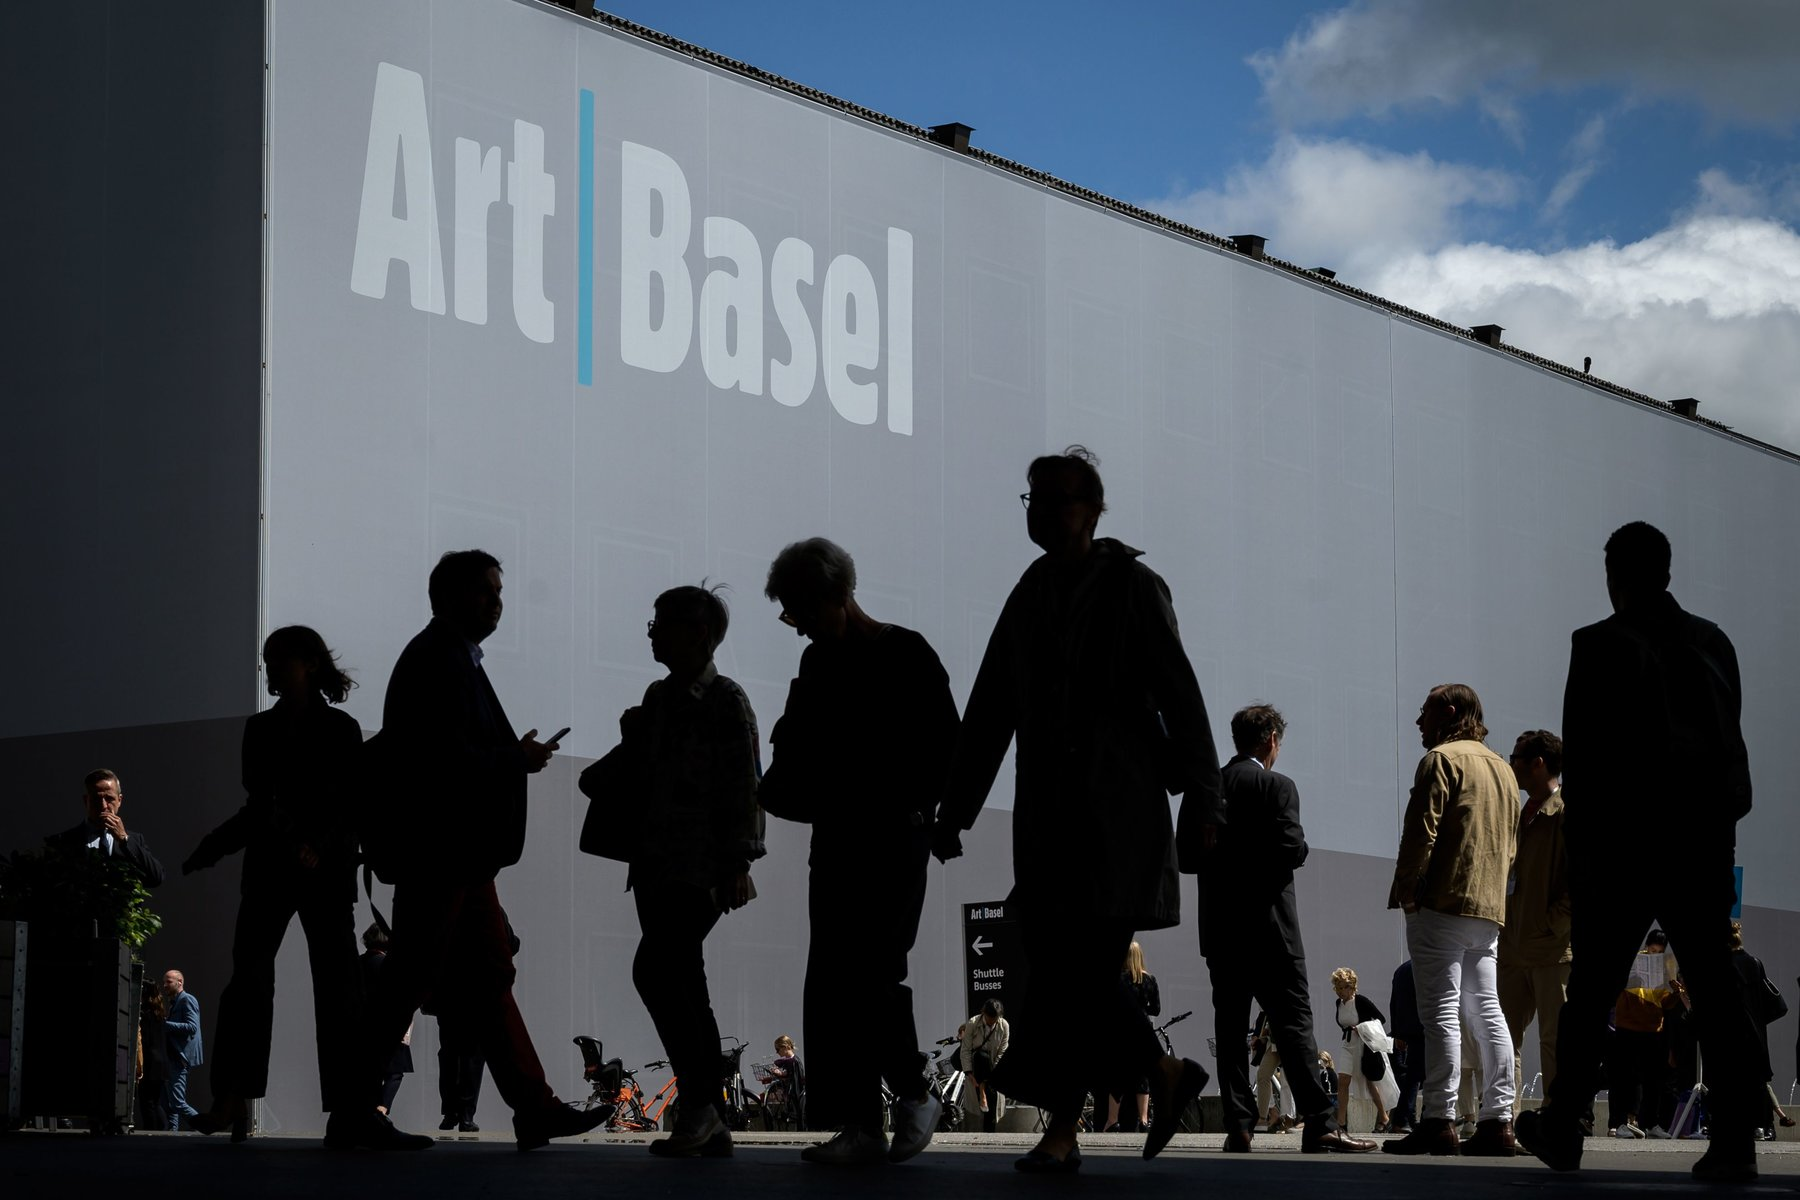 Art Basel is Launching A Virtual Show art basel What You Need To Know About Art Basel merlin 156341331 73c055b0 7346 4da7 9efc 96364794a155 mobileMasterAt3x art basel What You Need To Know About Art Basel merlin 156341331 73c055b0 7346 4da7 9efc 96364794a155 mobileMasterAt3x